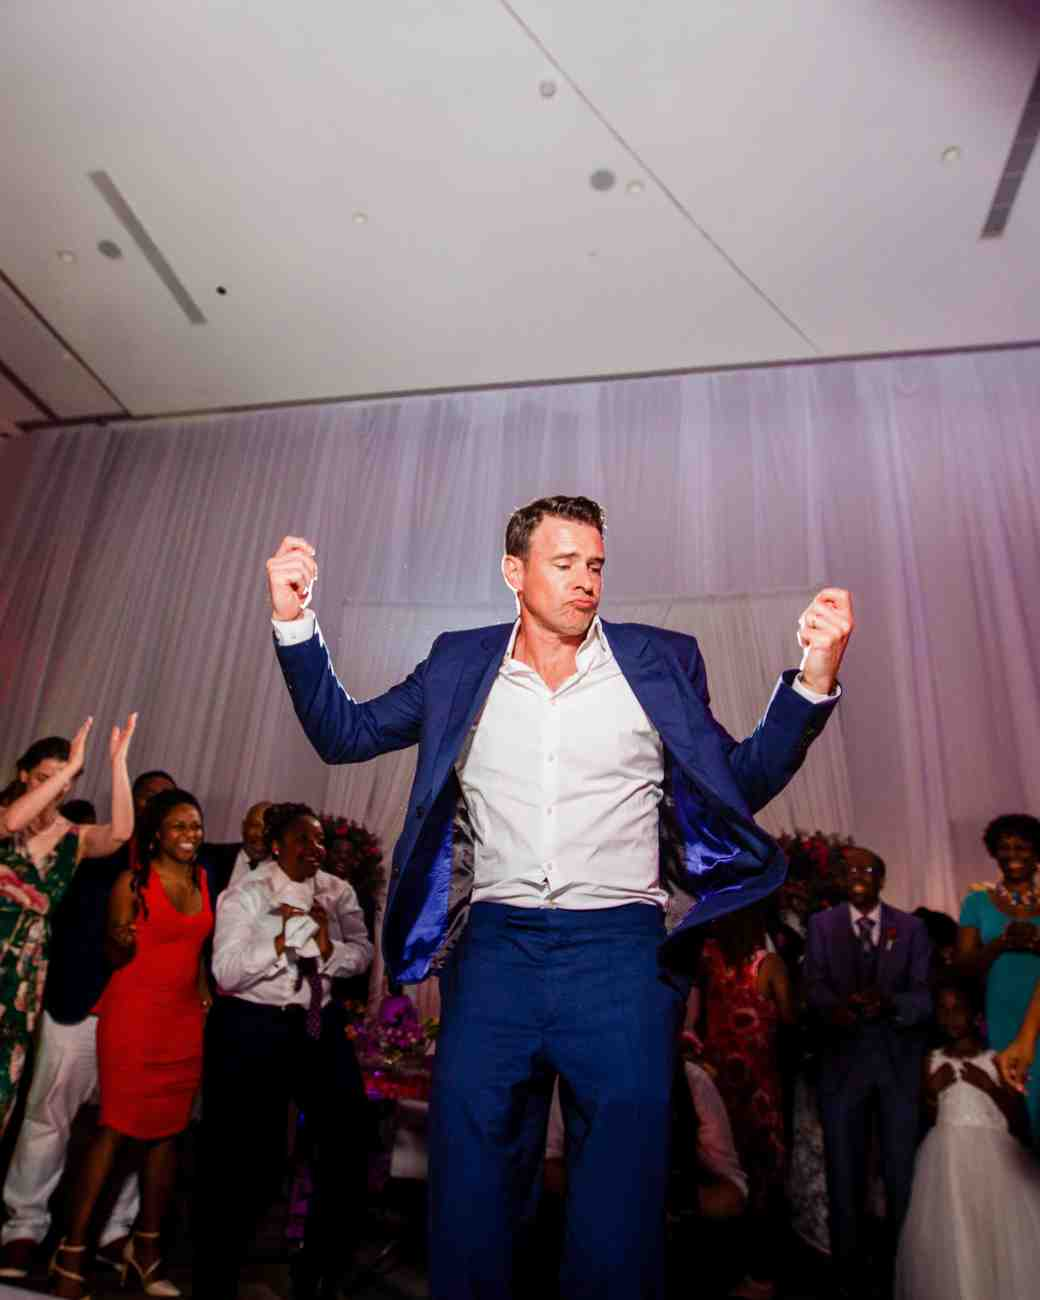 wedding reception man in blue suit dancing